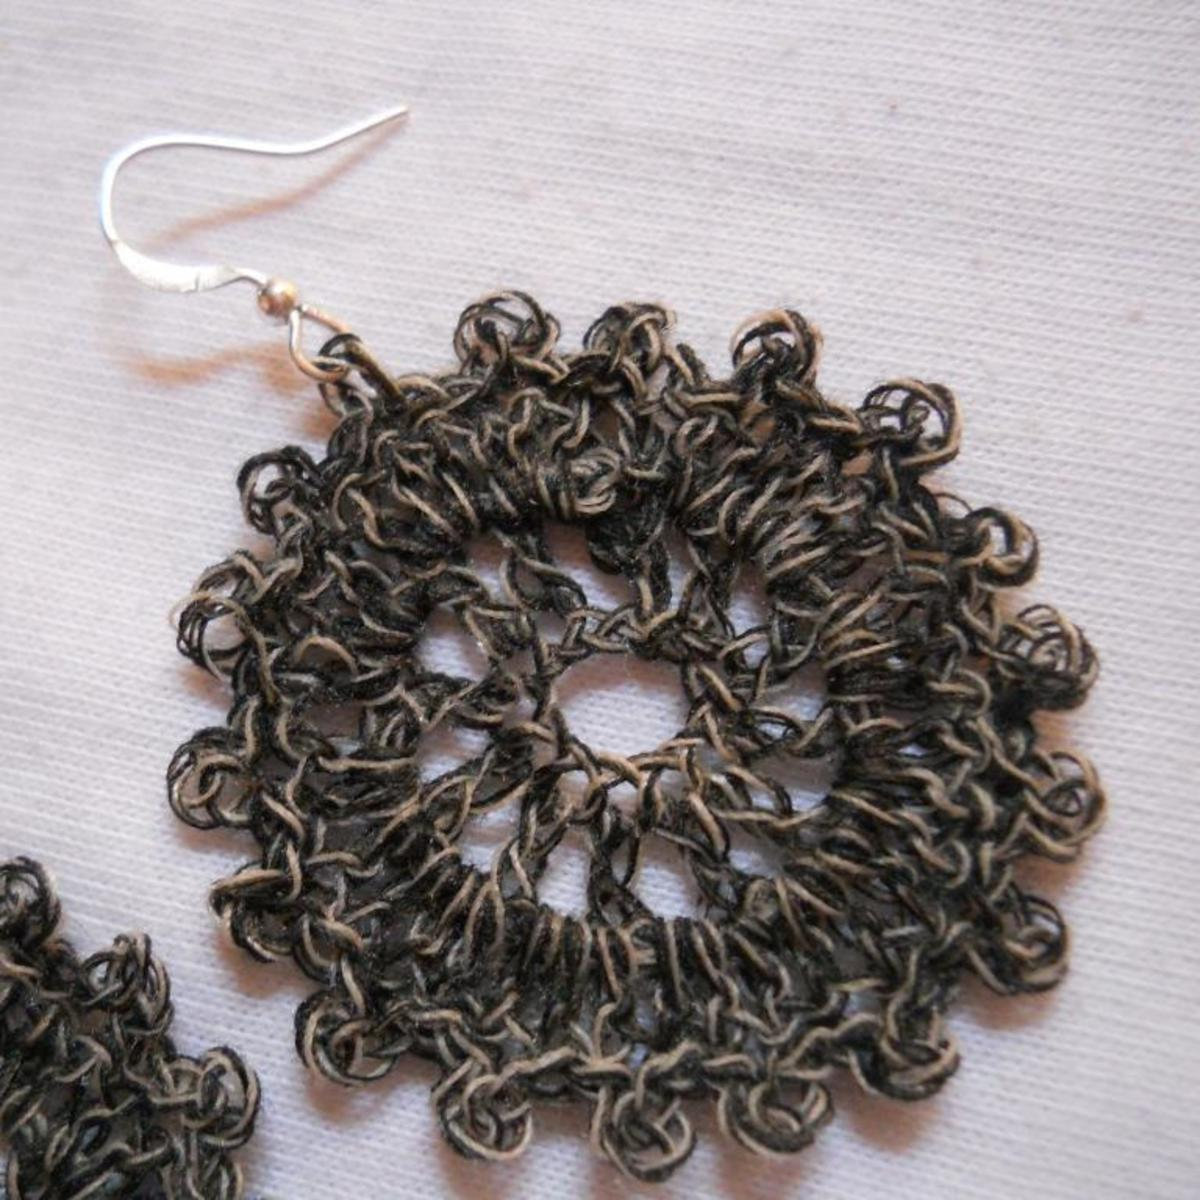 Crochet Circle Earrings #1